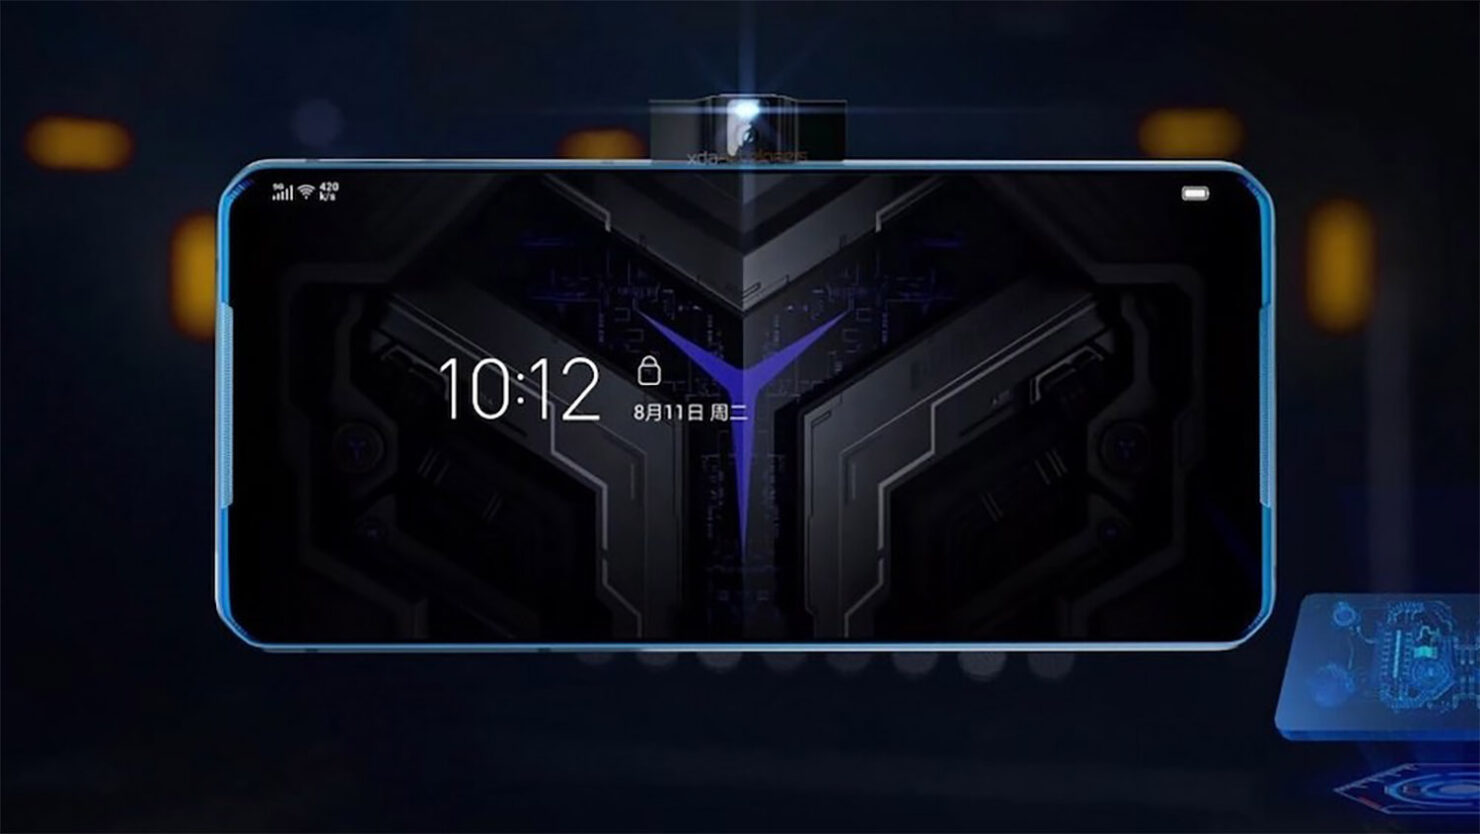 Lenovo Legion Gaming Smartphone Also Gets a Launch Date; July 22 Just Like the ASUS ROG Phone 3